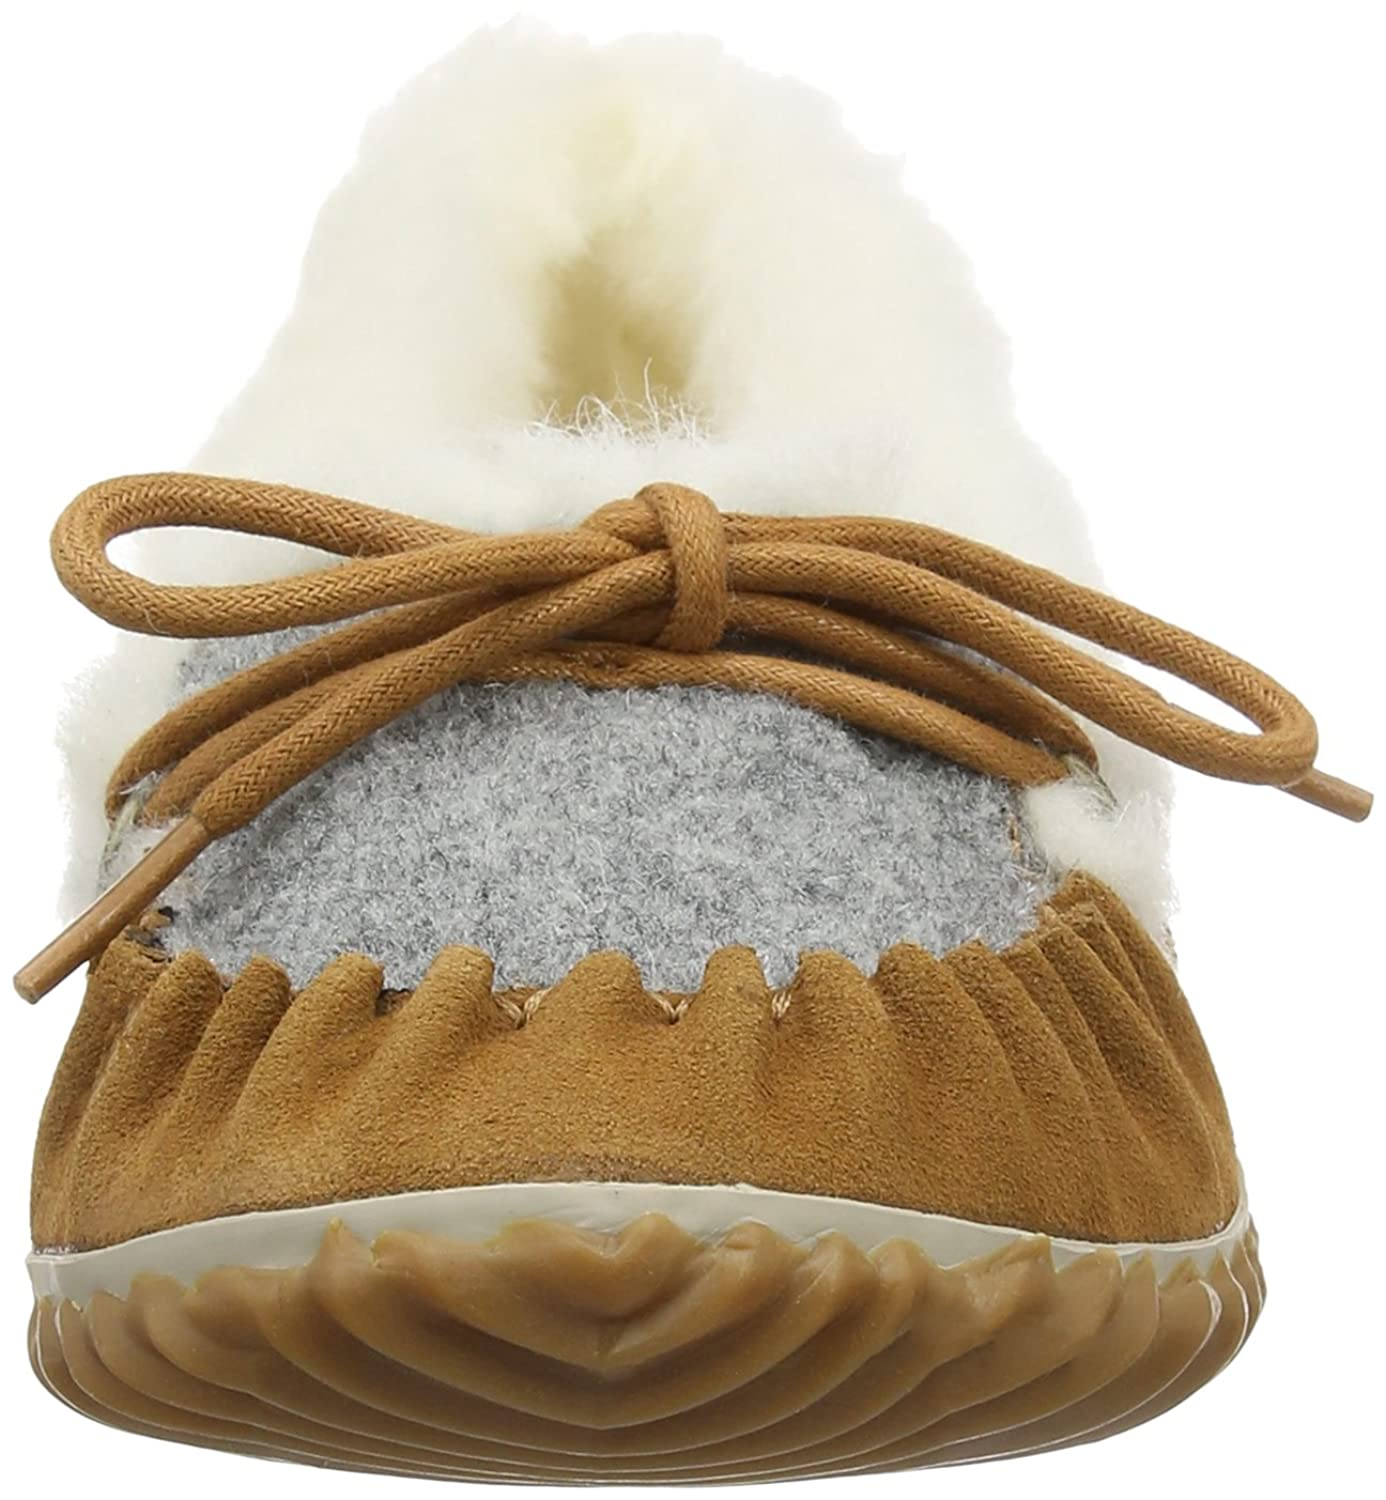 Out N About Slipper, Mocasines para Mujer, Marrón (Elk, Fawn 286Elk, Fawn 286), 36 EU Sorel